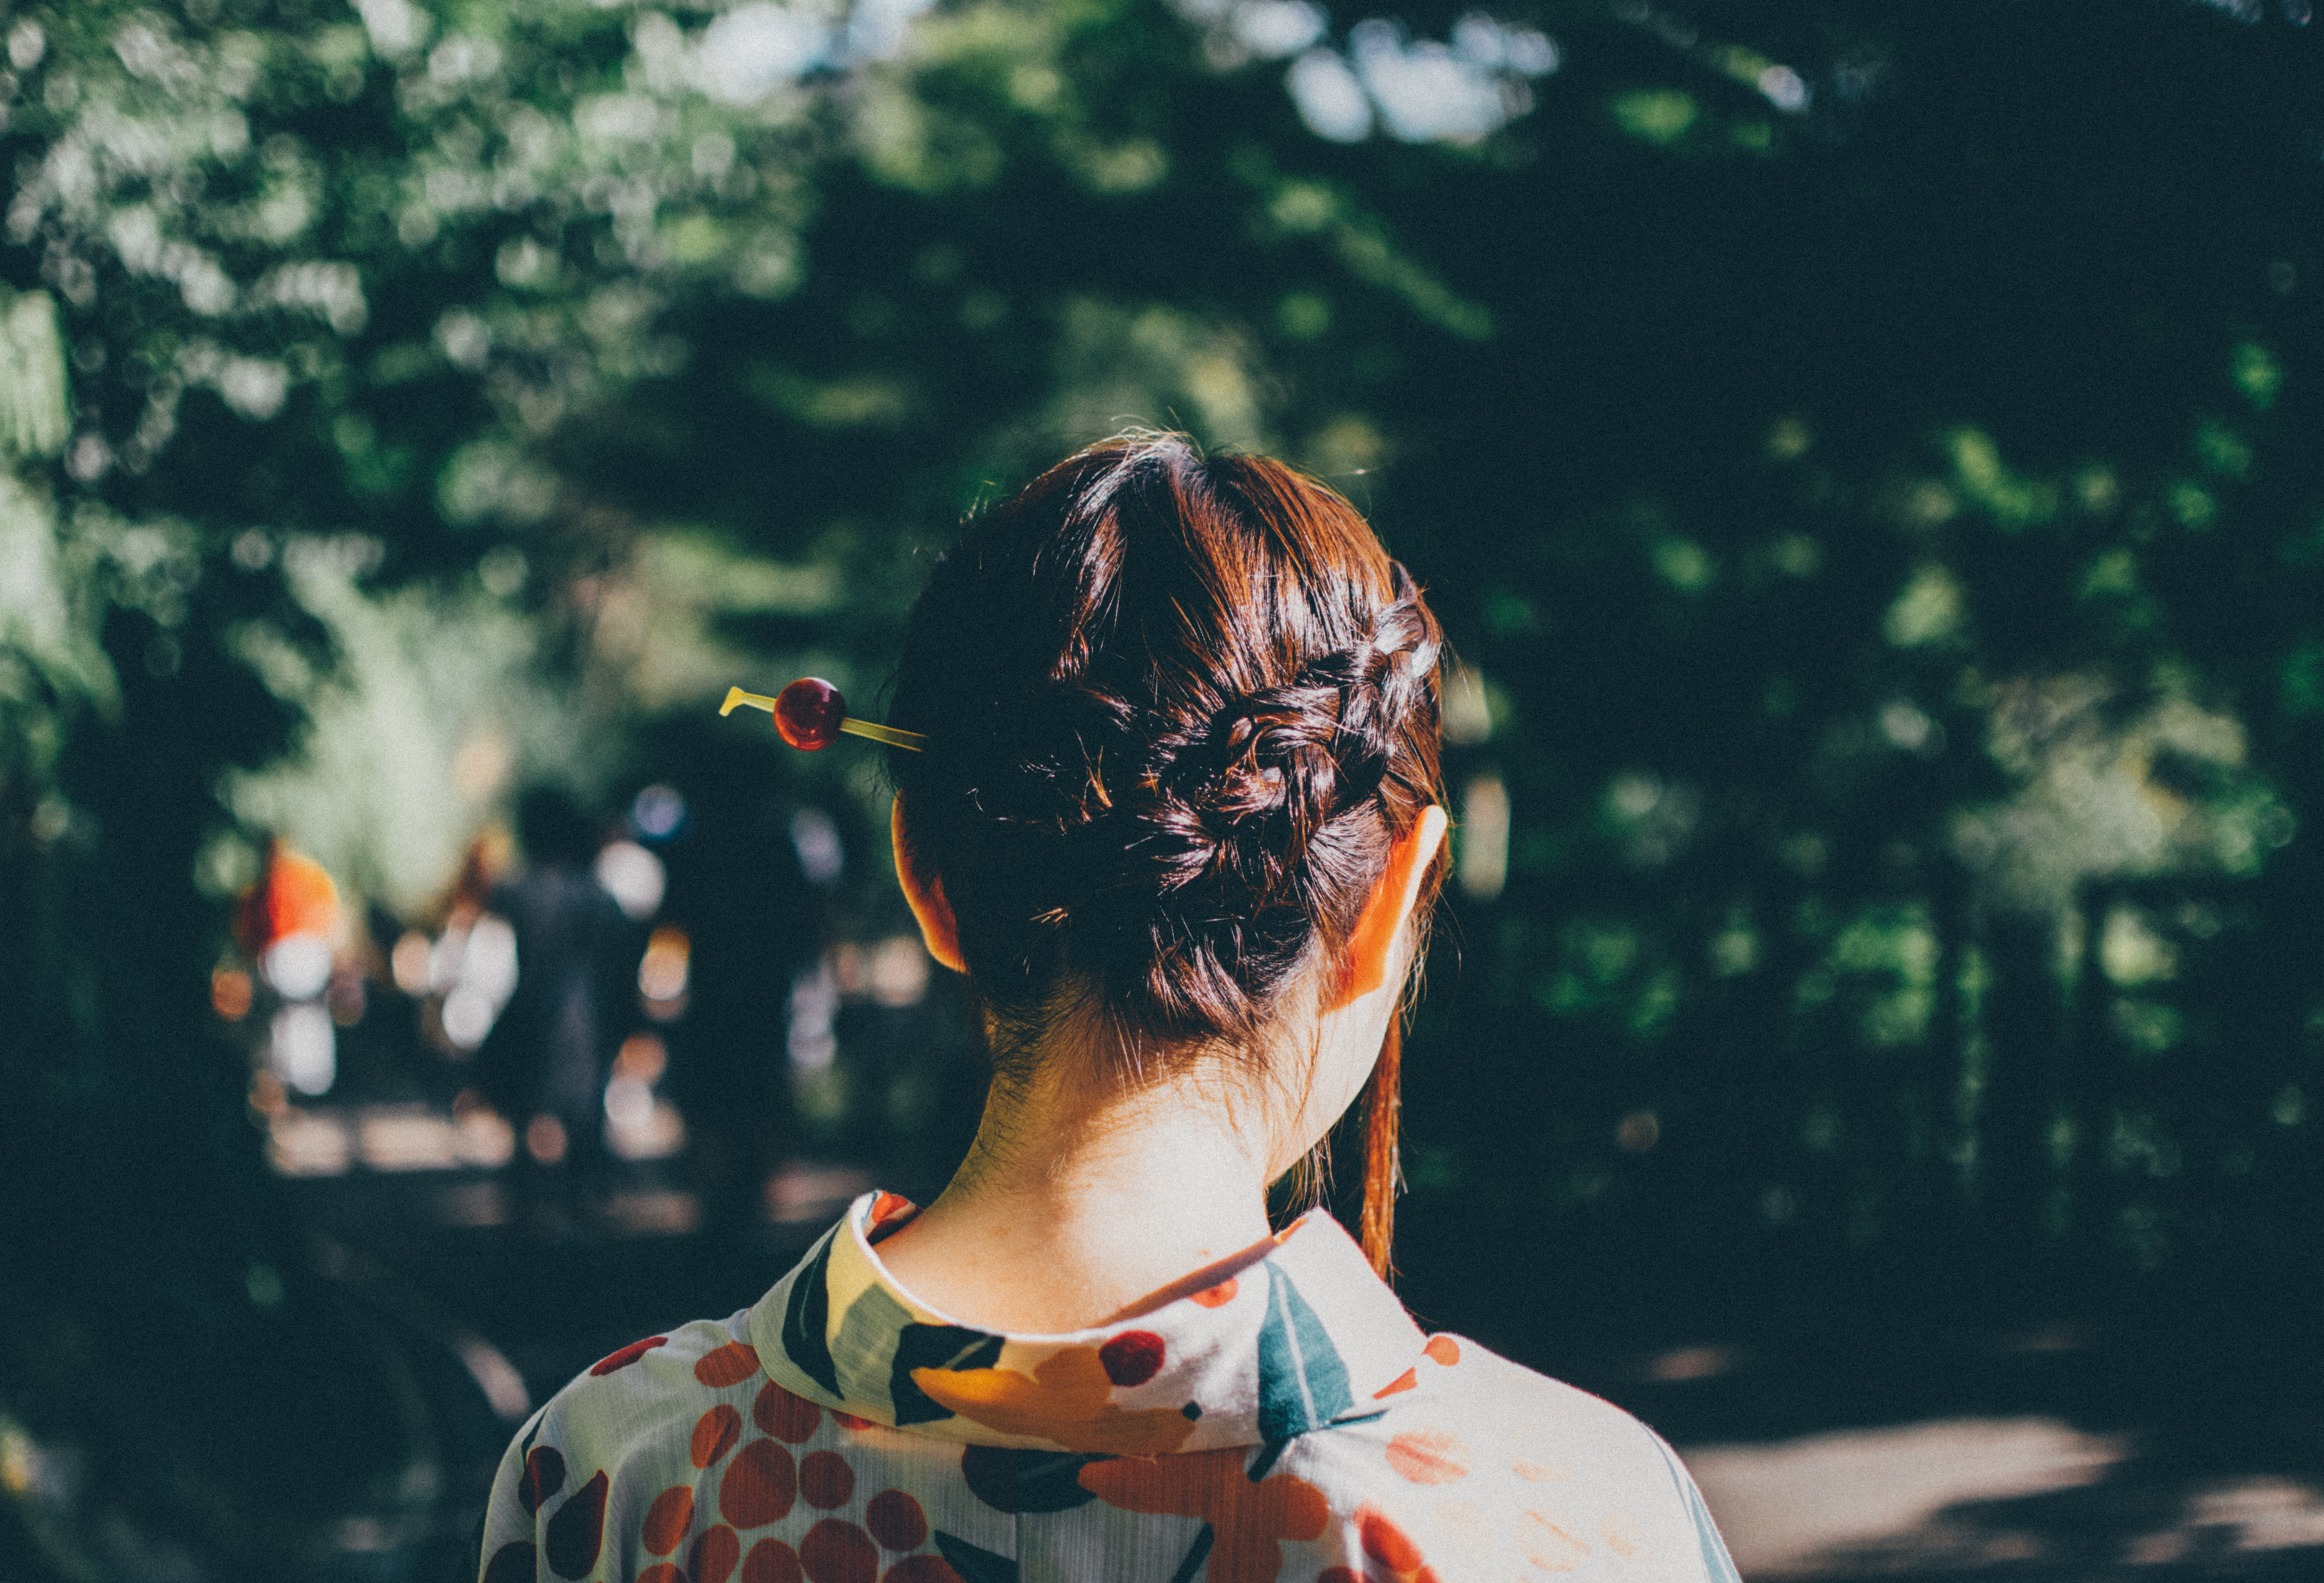 Standing behind a woman with fashionable braided hair in the park